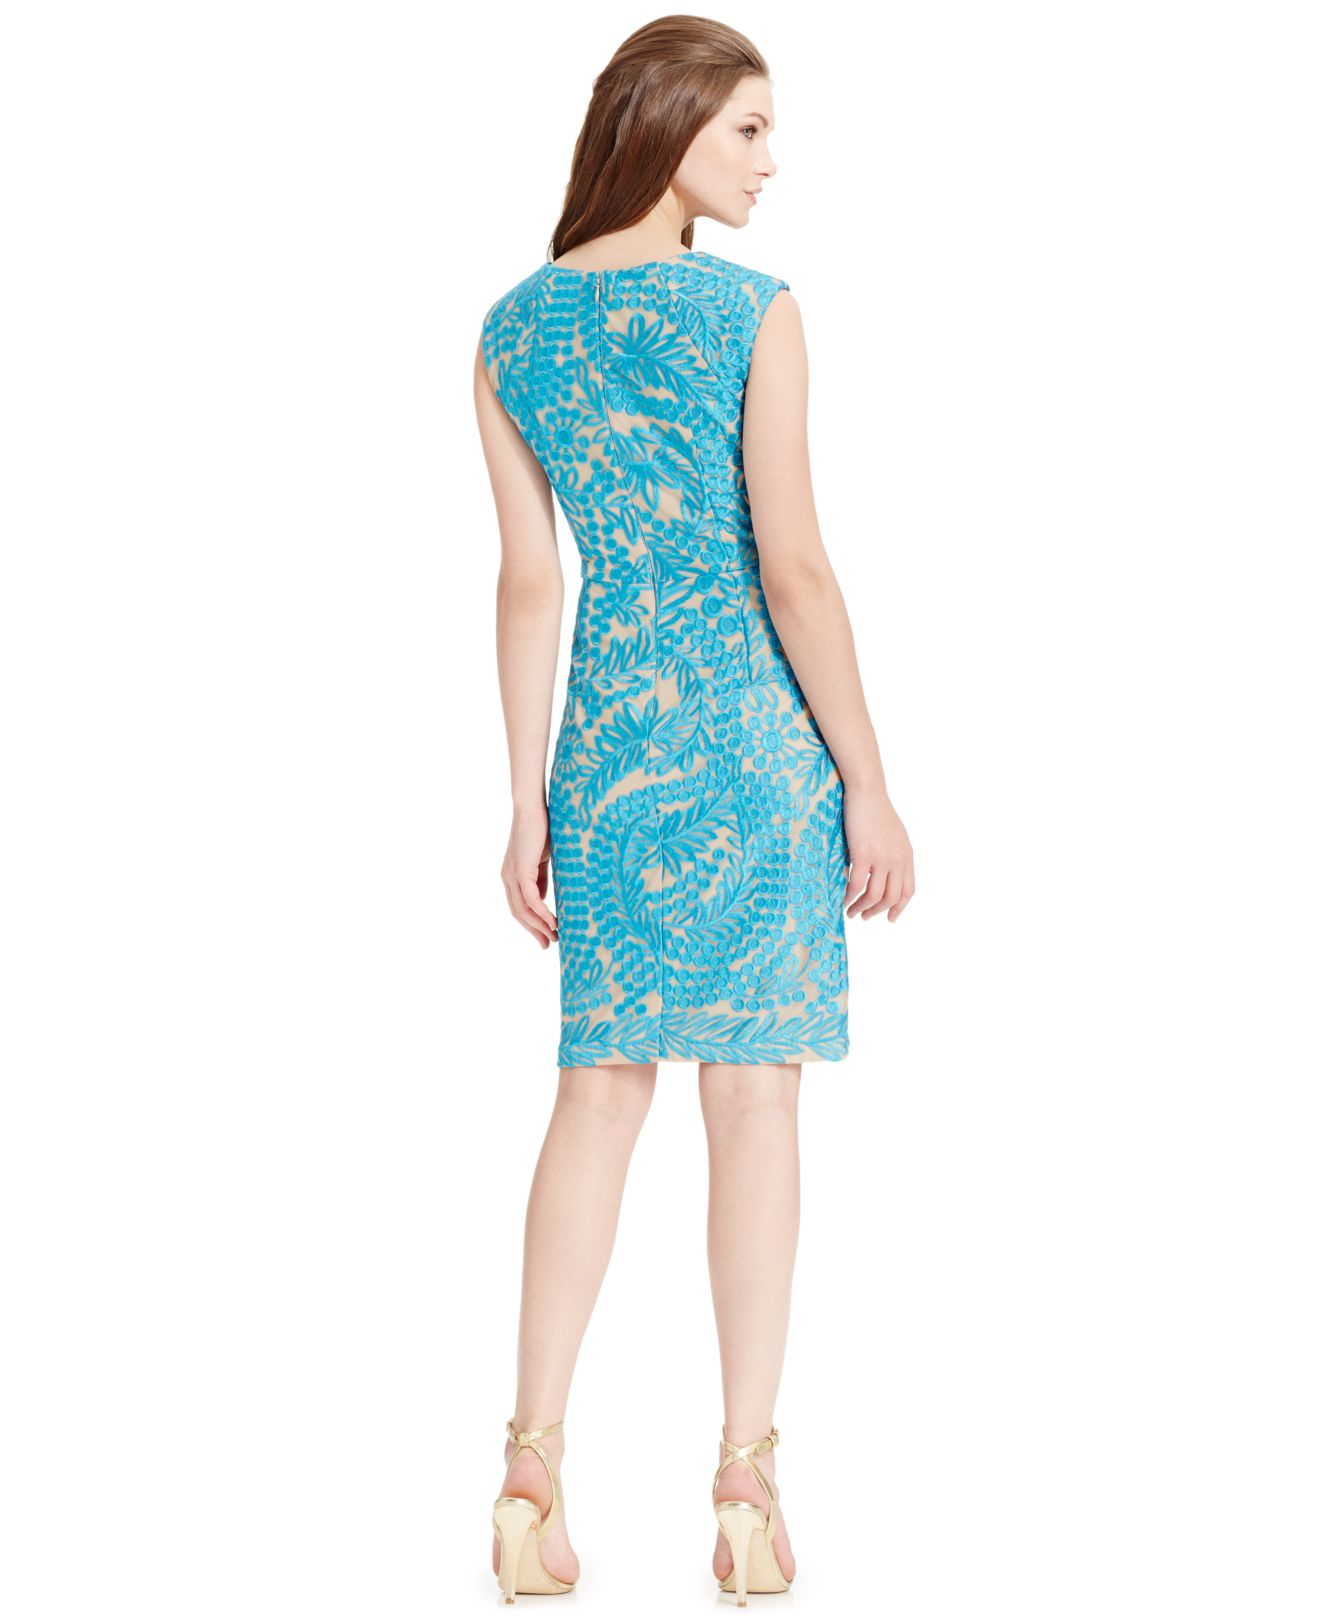 Lyst alex evenings floral embroidered sheath dress in blue